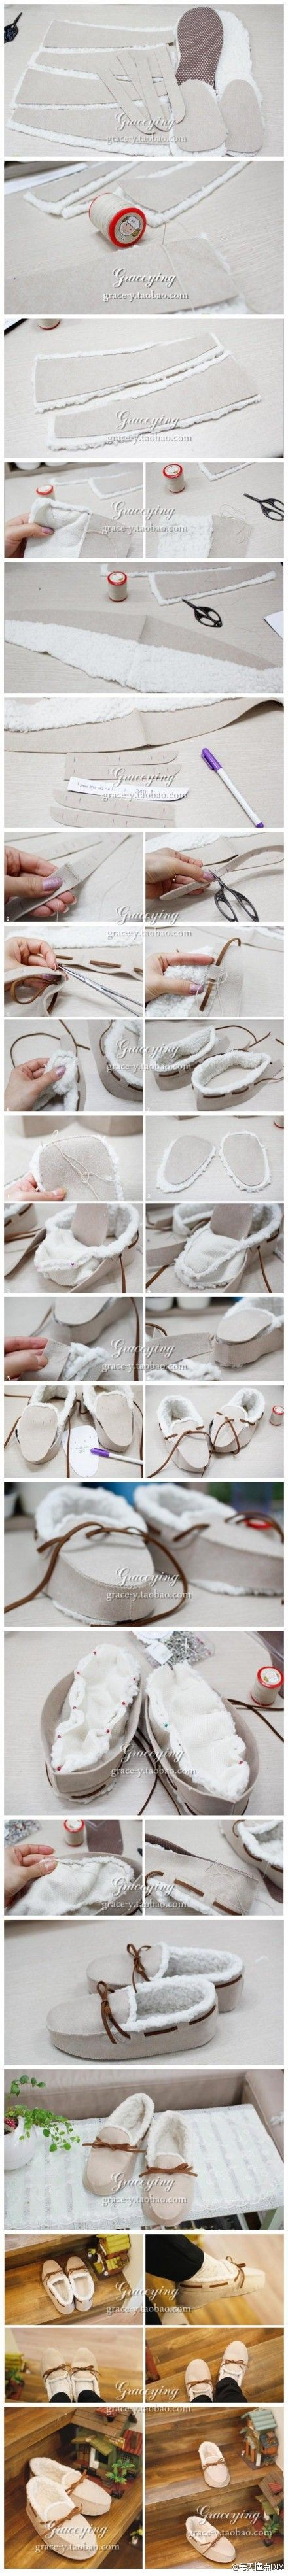 DIY Fuzzy Mocs by duitang - crafty!